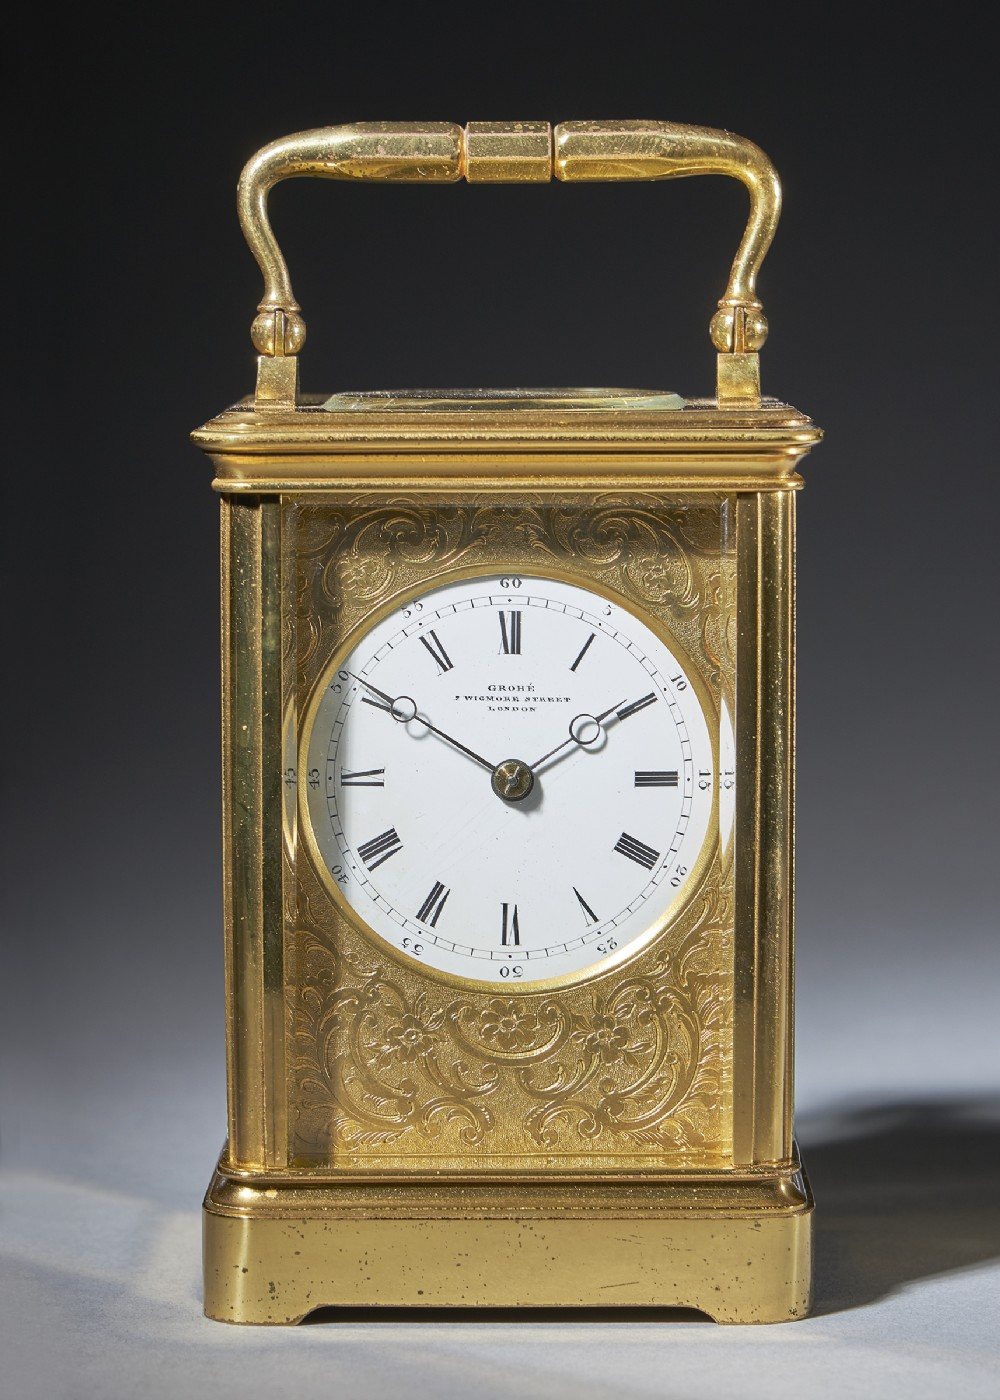 striking 19th century carriage clock with a giltbrass corniche case by groh